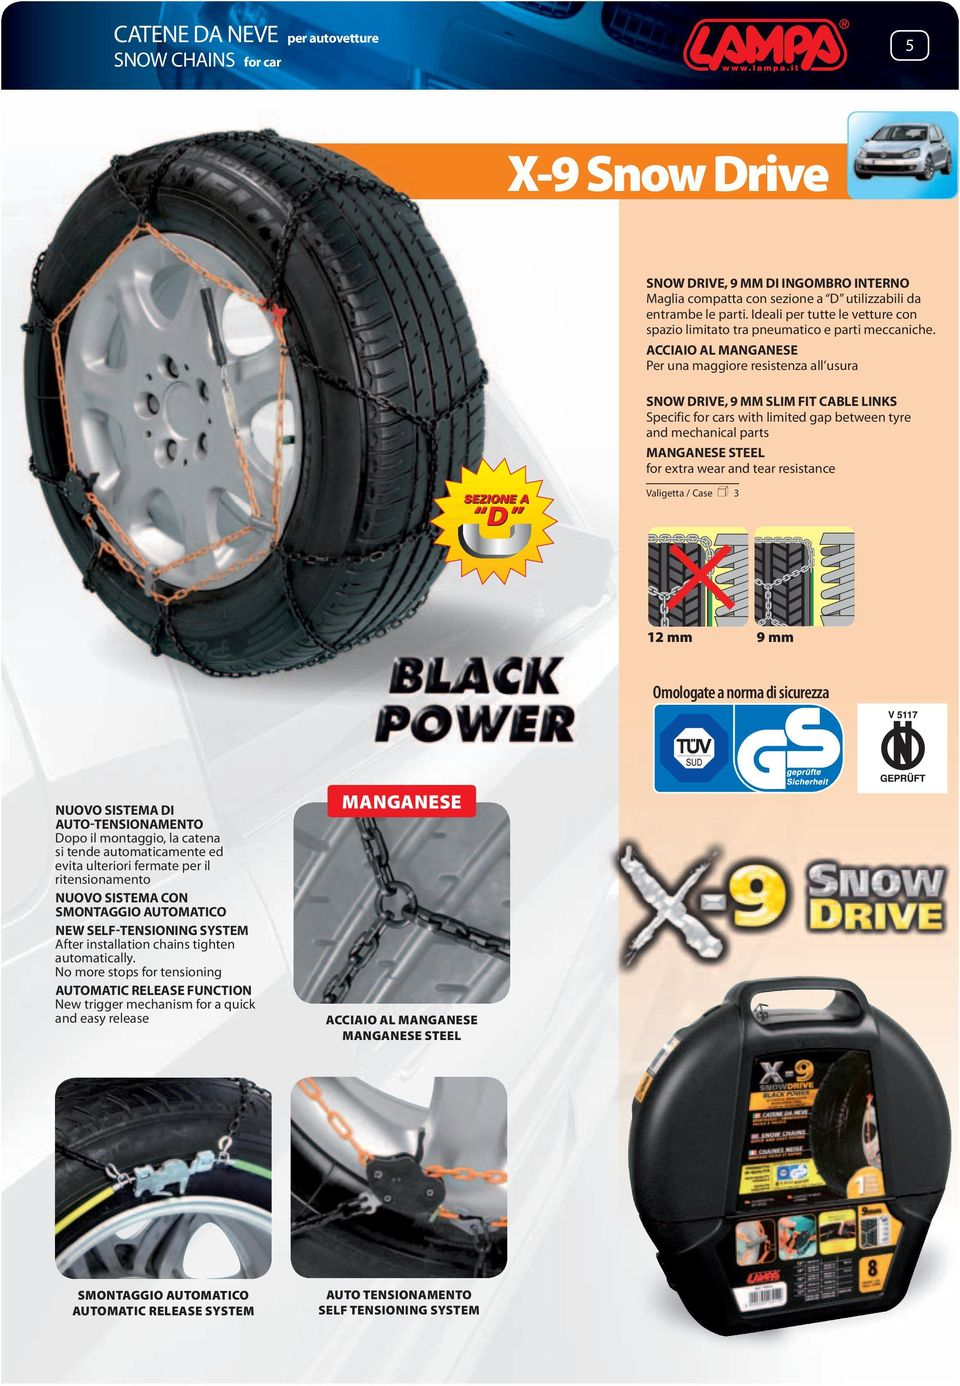 ACCIAIO AL MANGANESE Per una maggiore resistenza all usura SNOW DRIVE, 9 MM SLIM FIT CABLE LINKS Specific for cars with limited gap between tyre and mechanical parts MANGANESE STEEL for extra wear